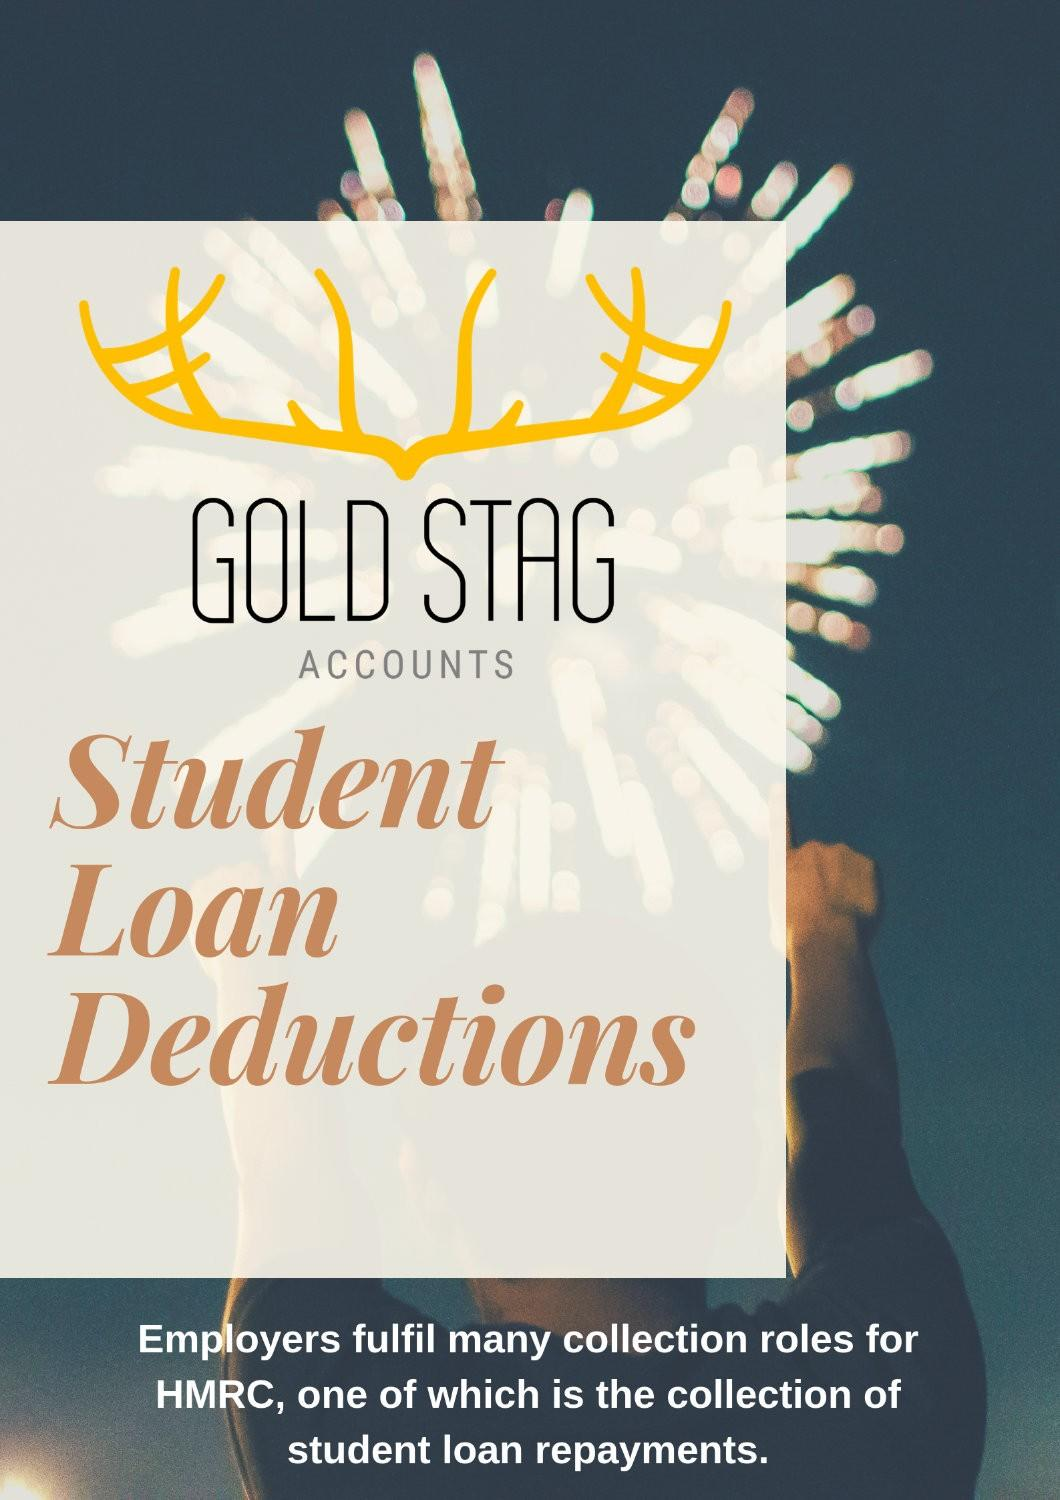 Student Loan Deducations:  Employers fulfil many collection roles for HMRC, one of which is the collection of student loan repayments.